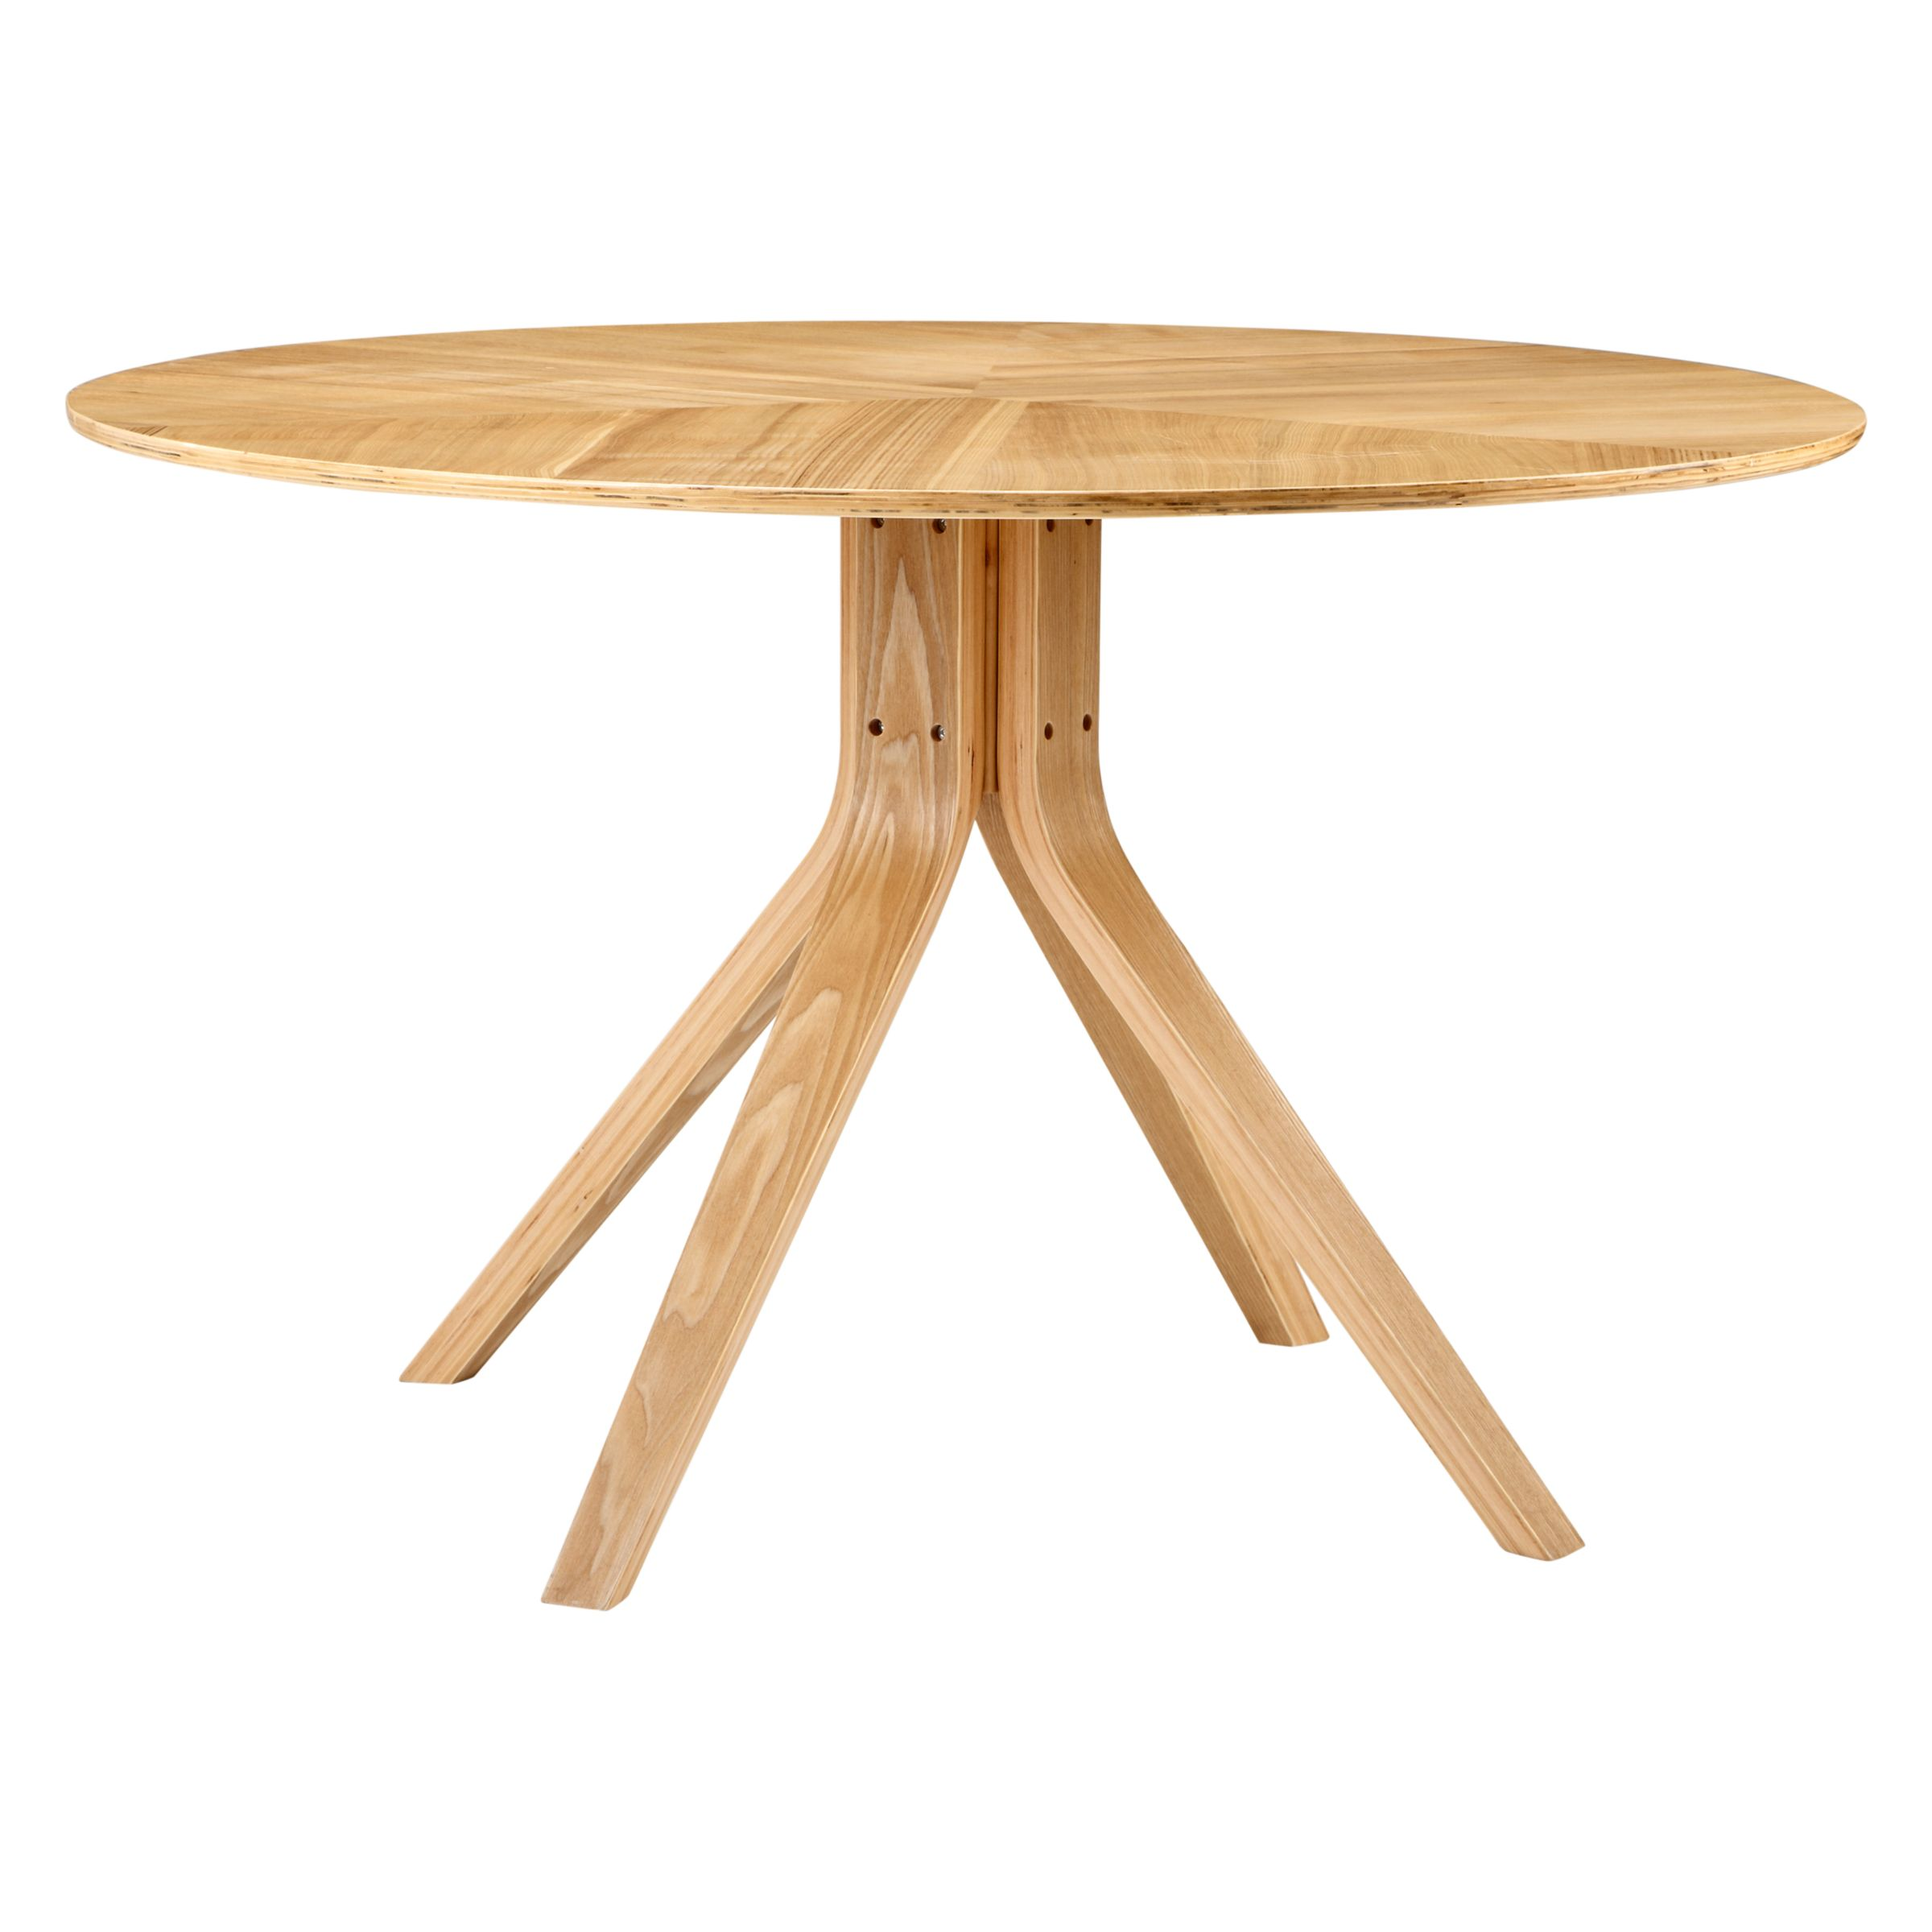 Round oak dining table Shop for cheap Furniture and Save  : 232100906alt1zoom from priceinspector.co.uk size 1600 x 1600 jpeg 129kB